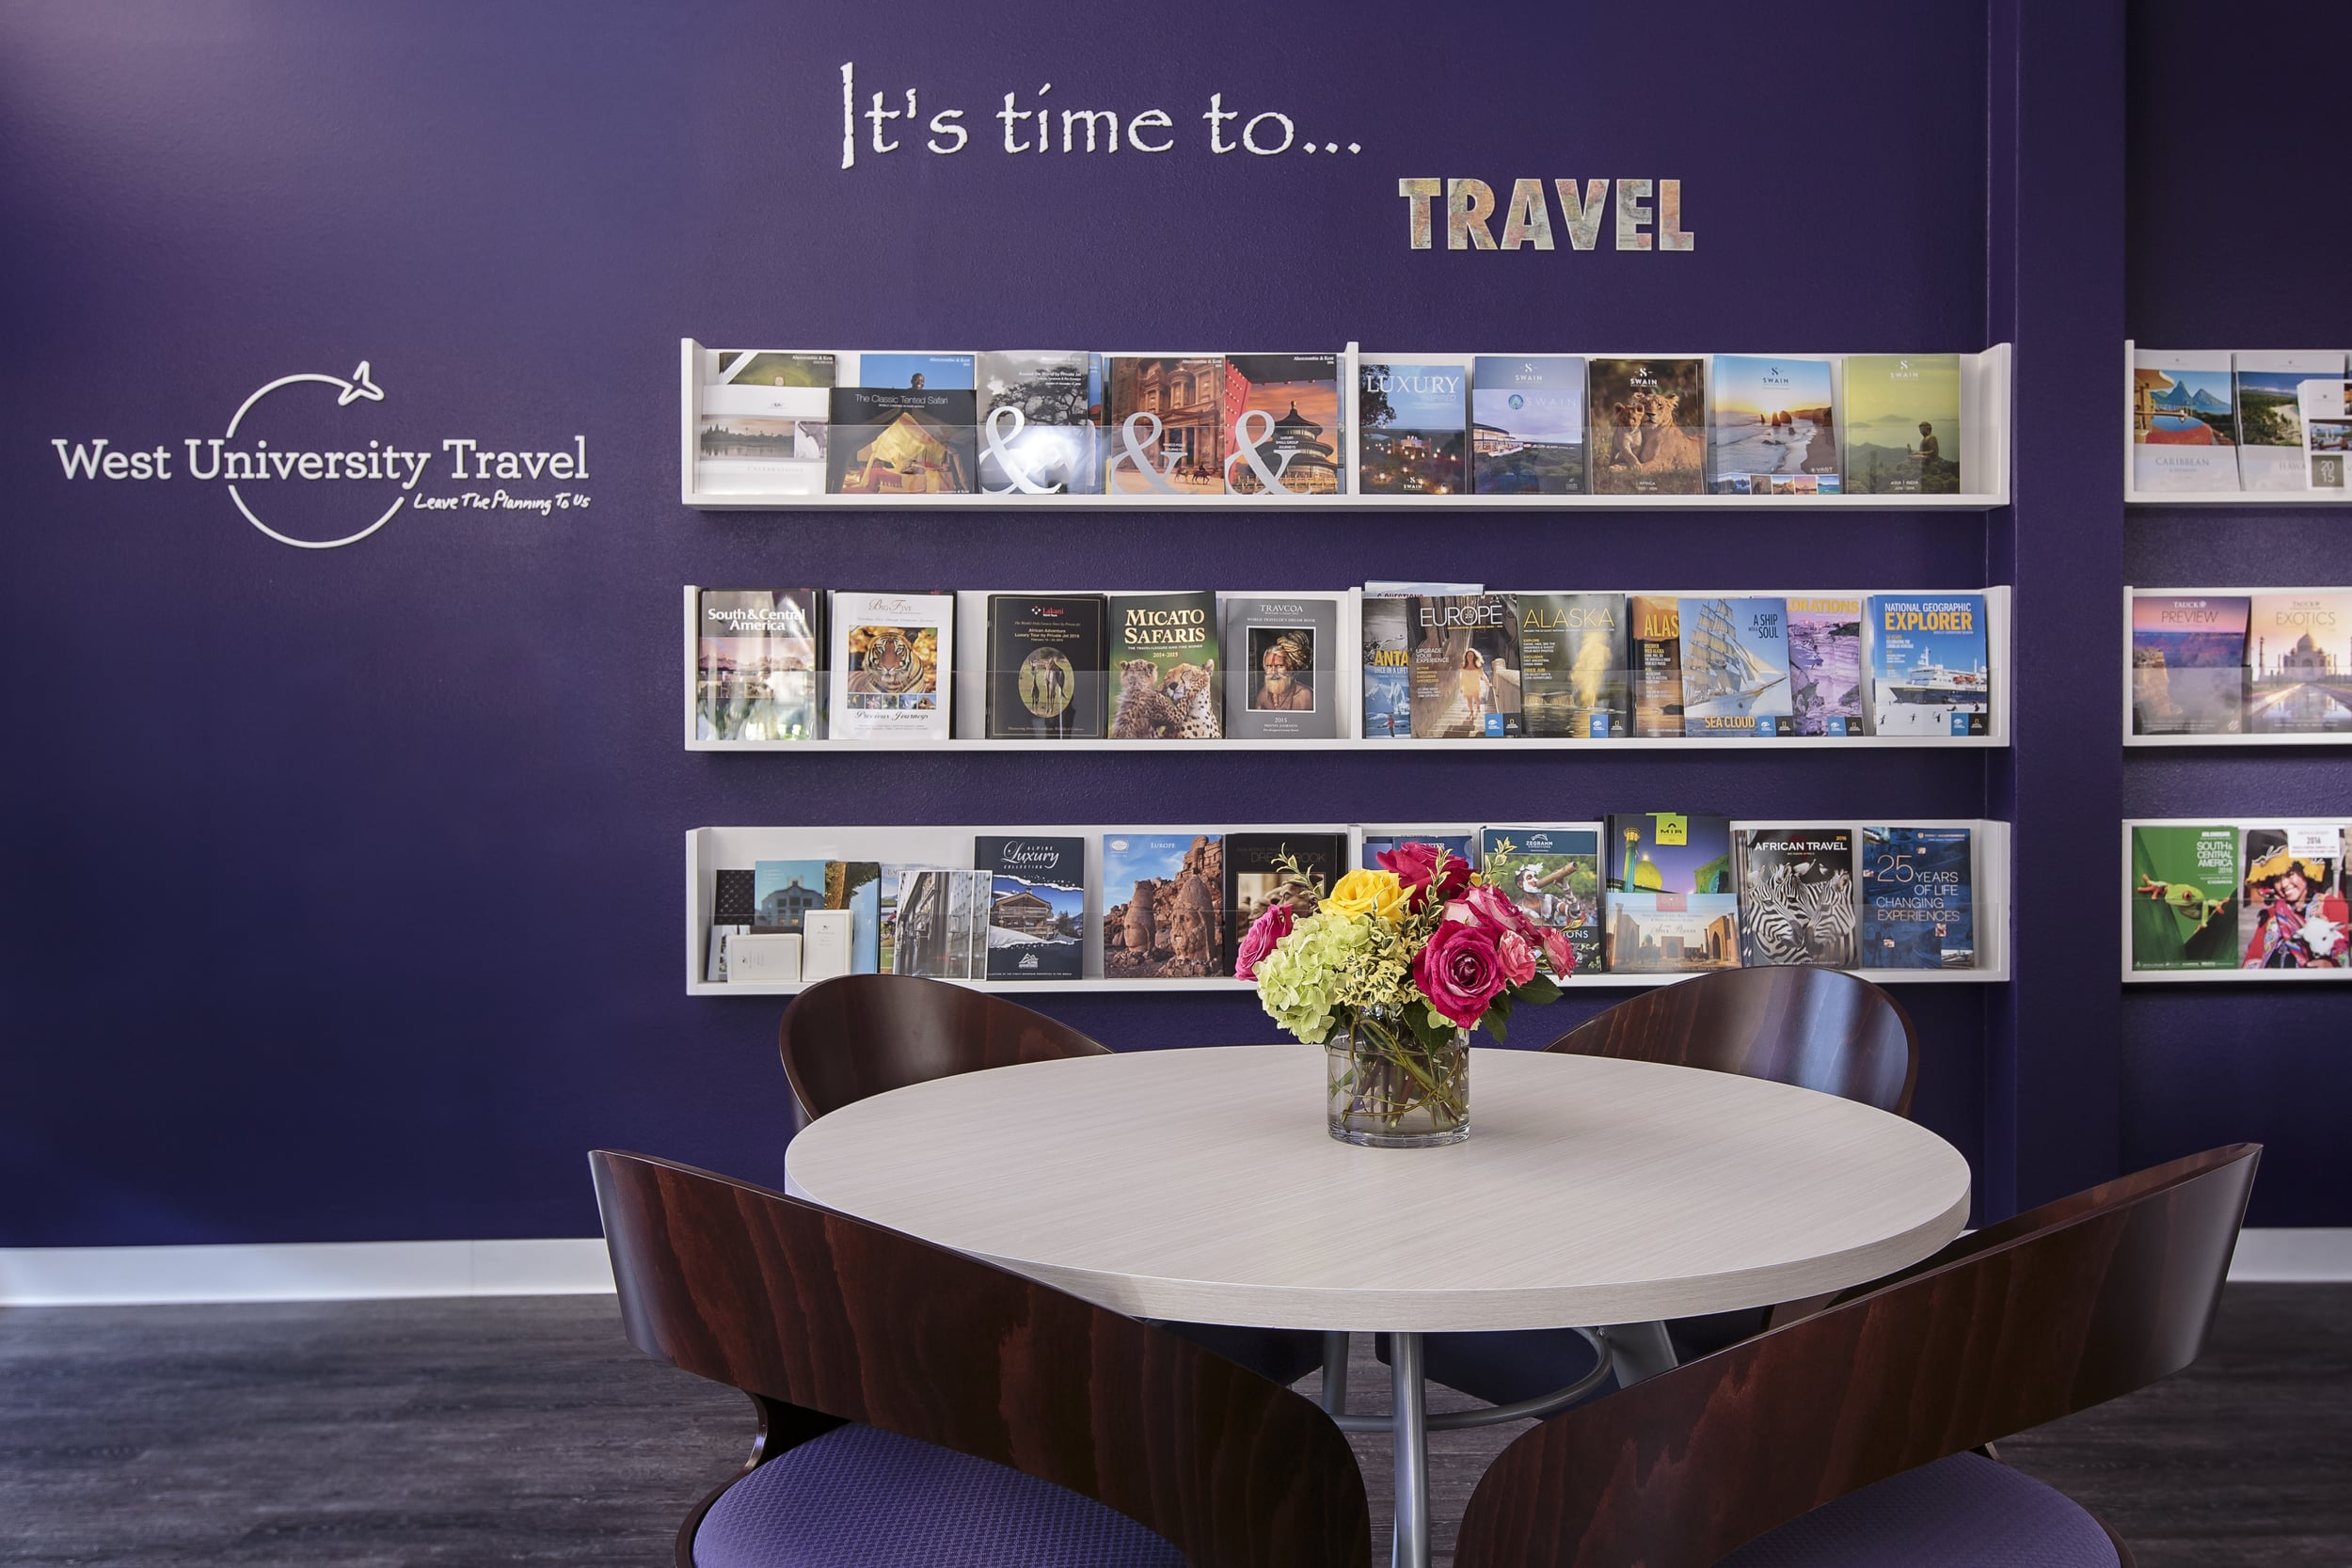 Best Travel Agency Office Design - Best Agency In The Word